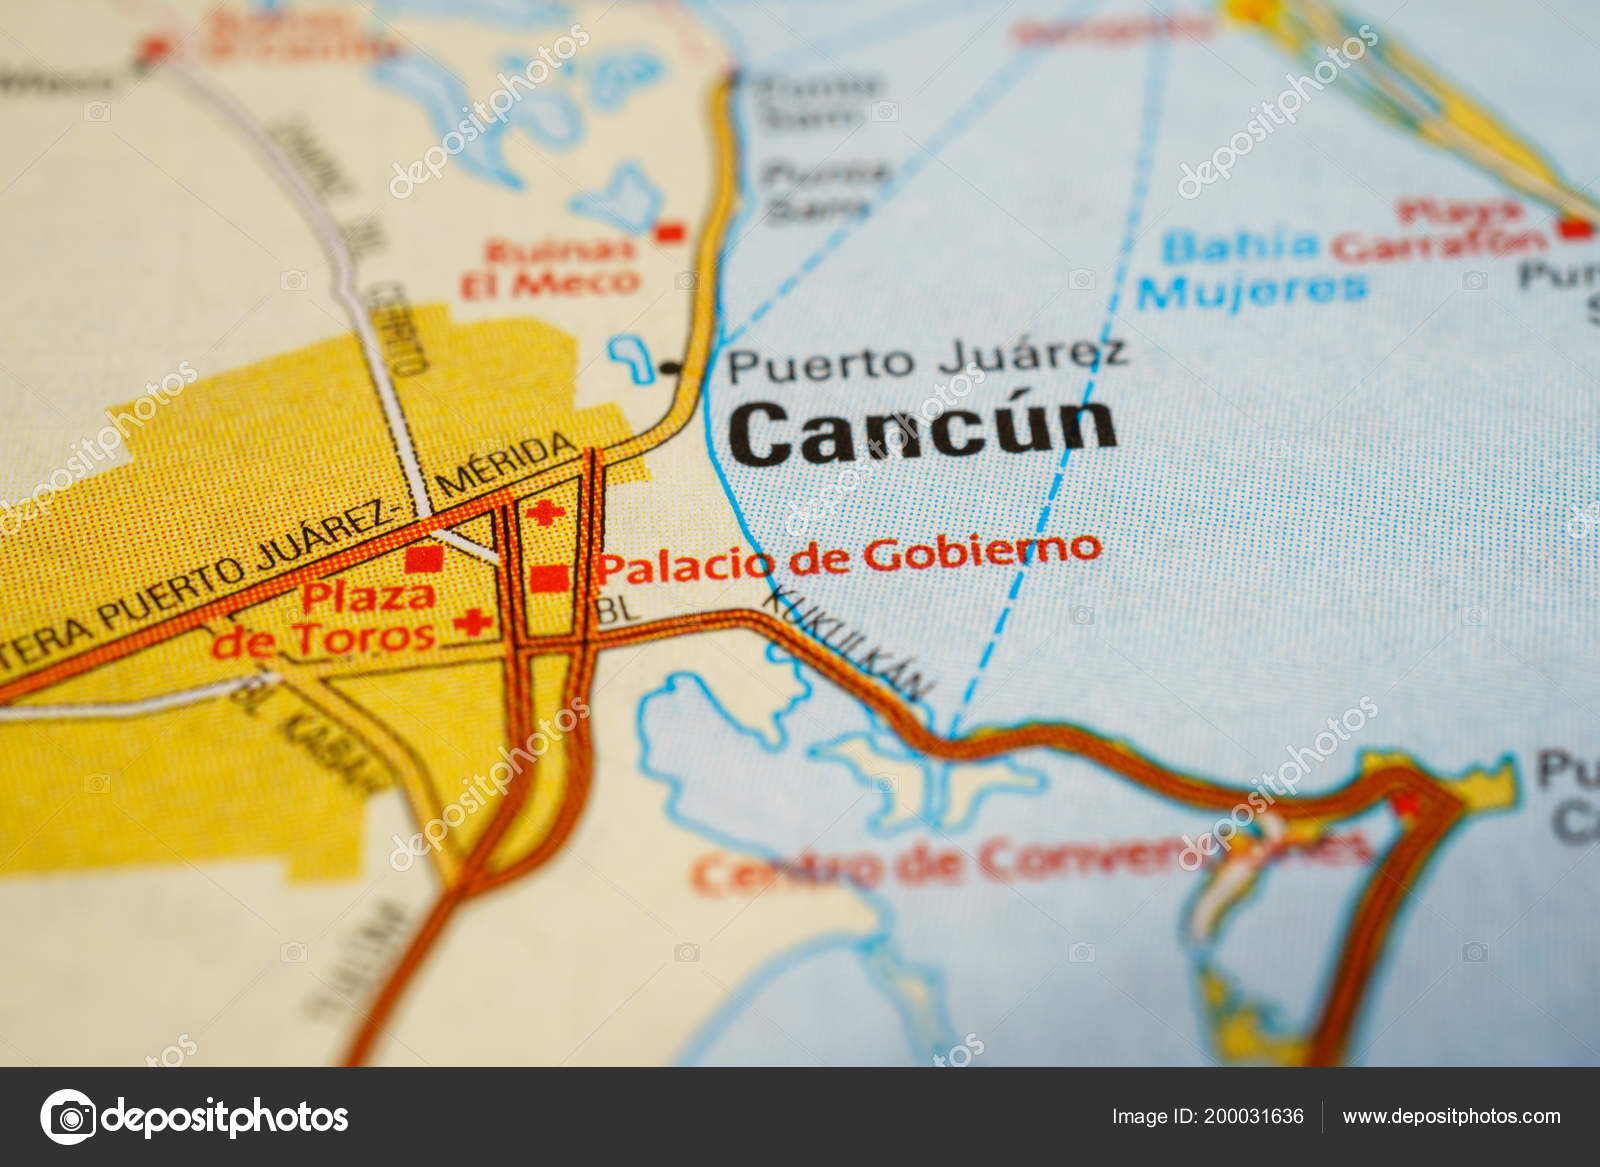 Cancun Mexico Map Stock Photo C Aallm 200031636